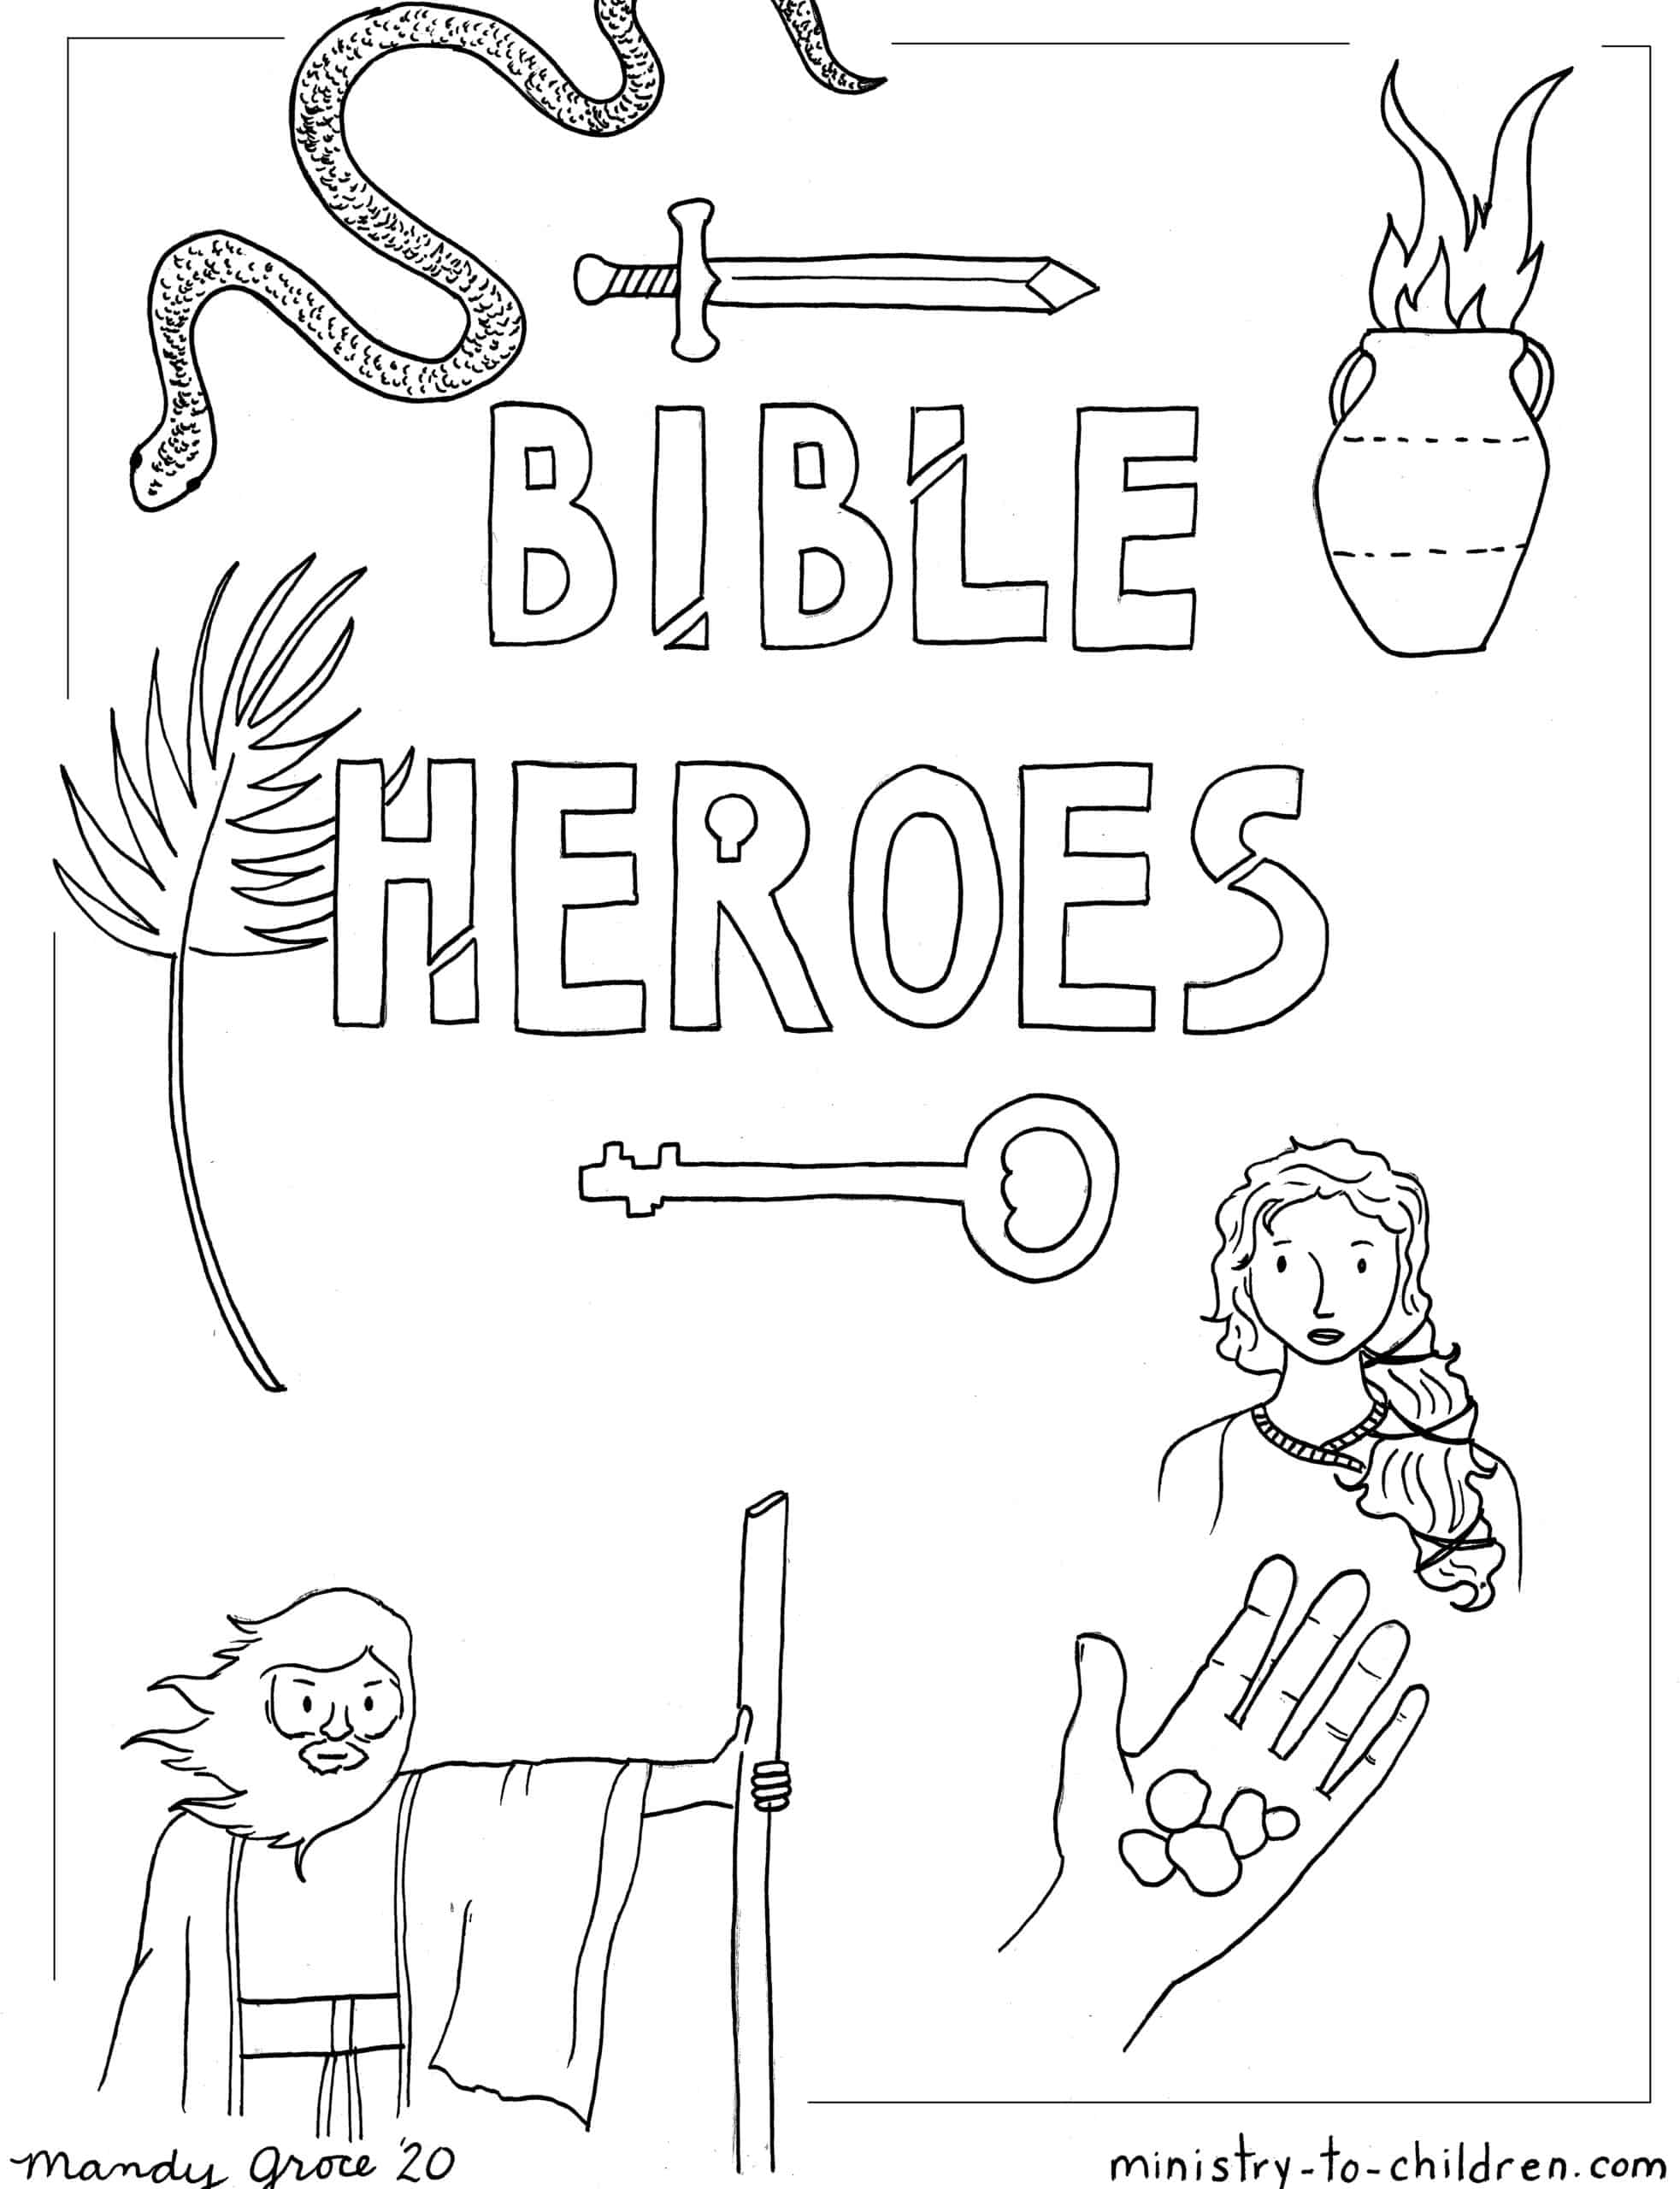 Bible Heroes Coloring Page Ministry-To-Children